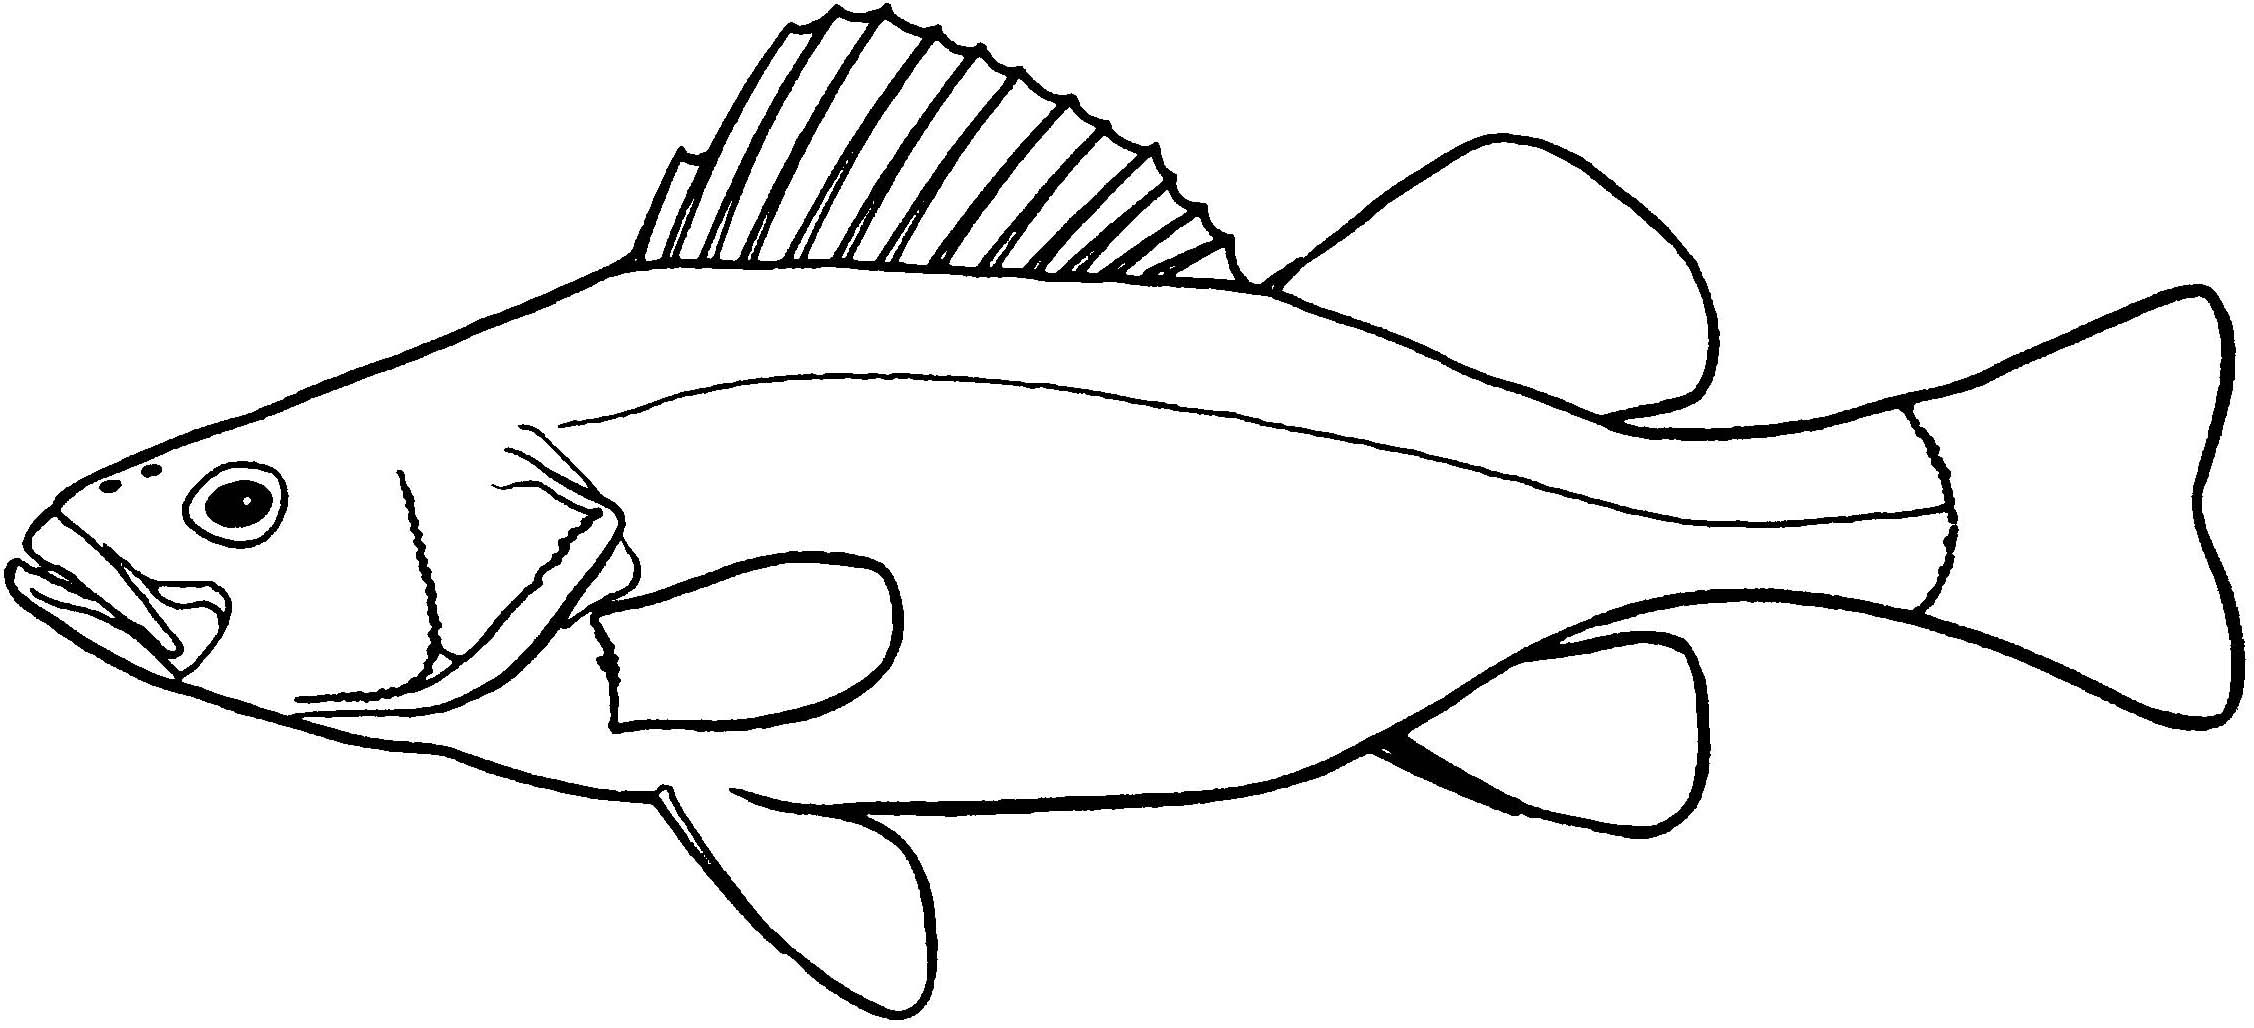 2254x1028 Salmon Drawing Bangus For Free Download